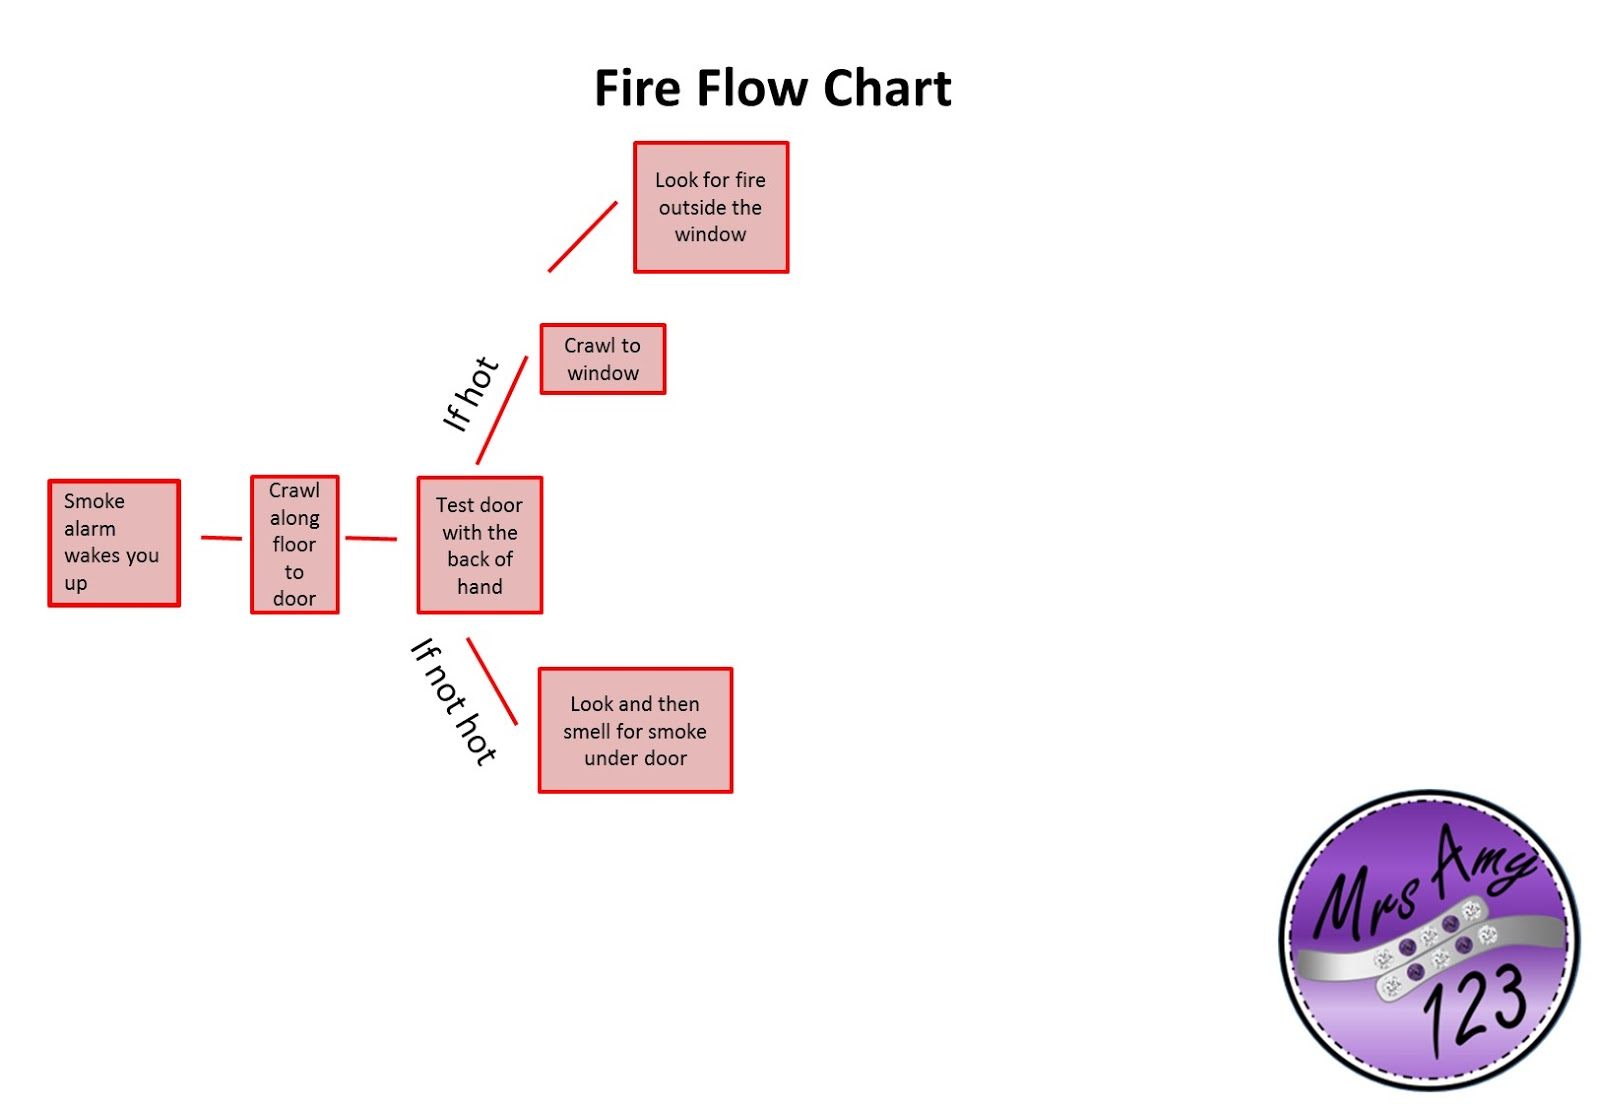 Mrsamy123 teaching fire safety to prepare for the fire flow chart activity students each get a turn to roll play waking up to a fire alarm they must choose the actions they would take nvjuhfo Gallery